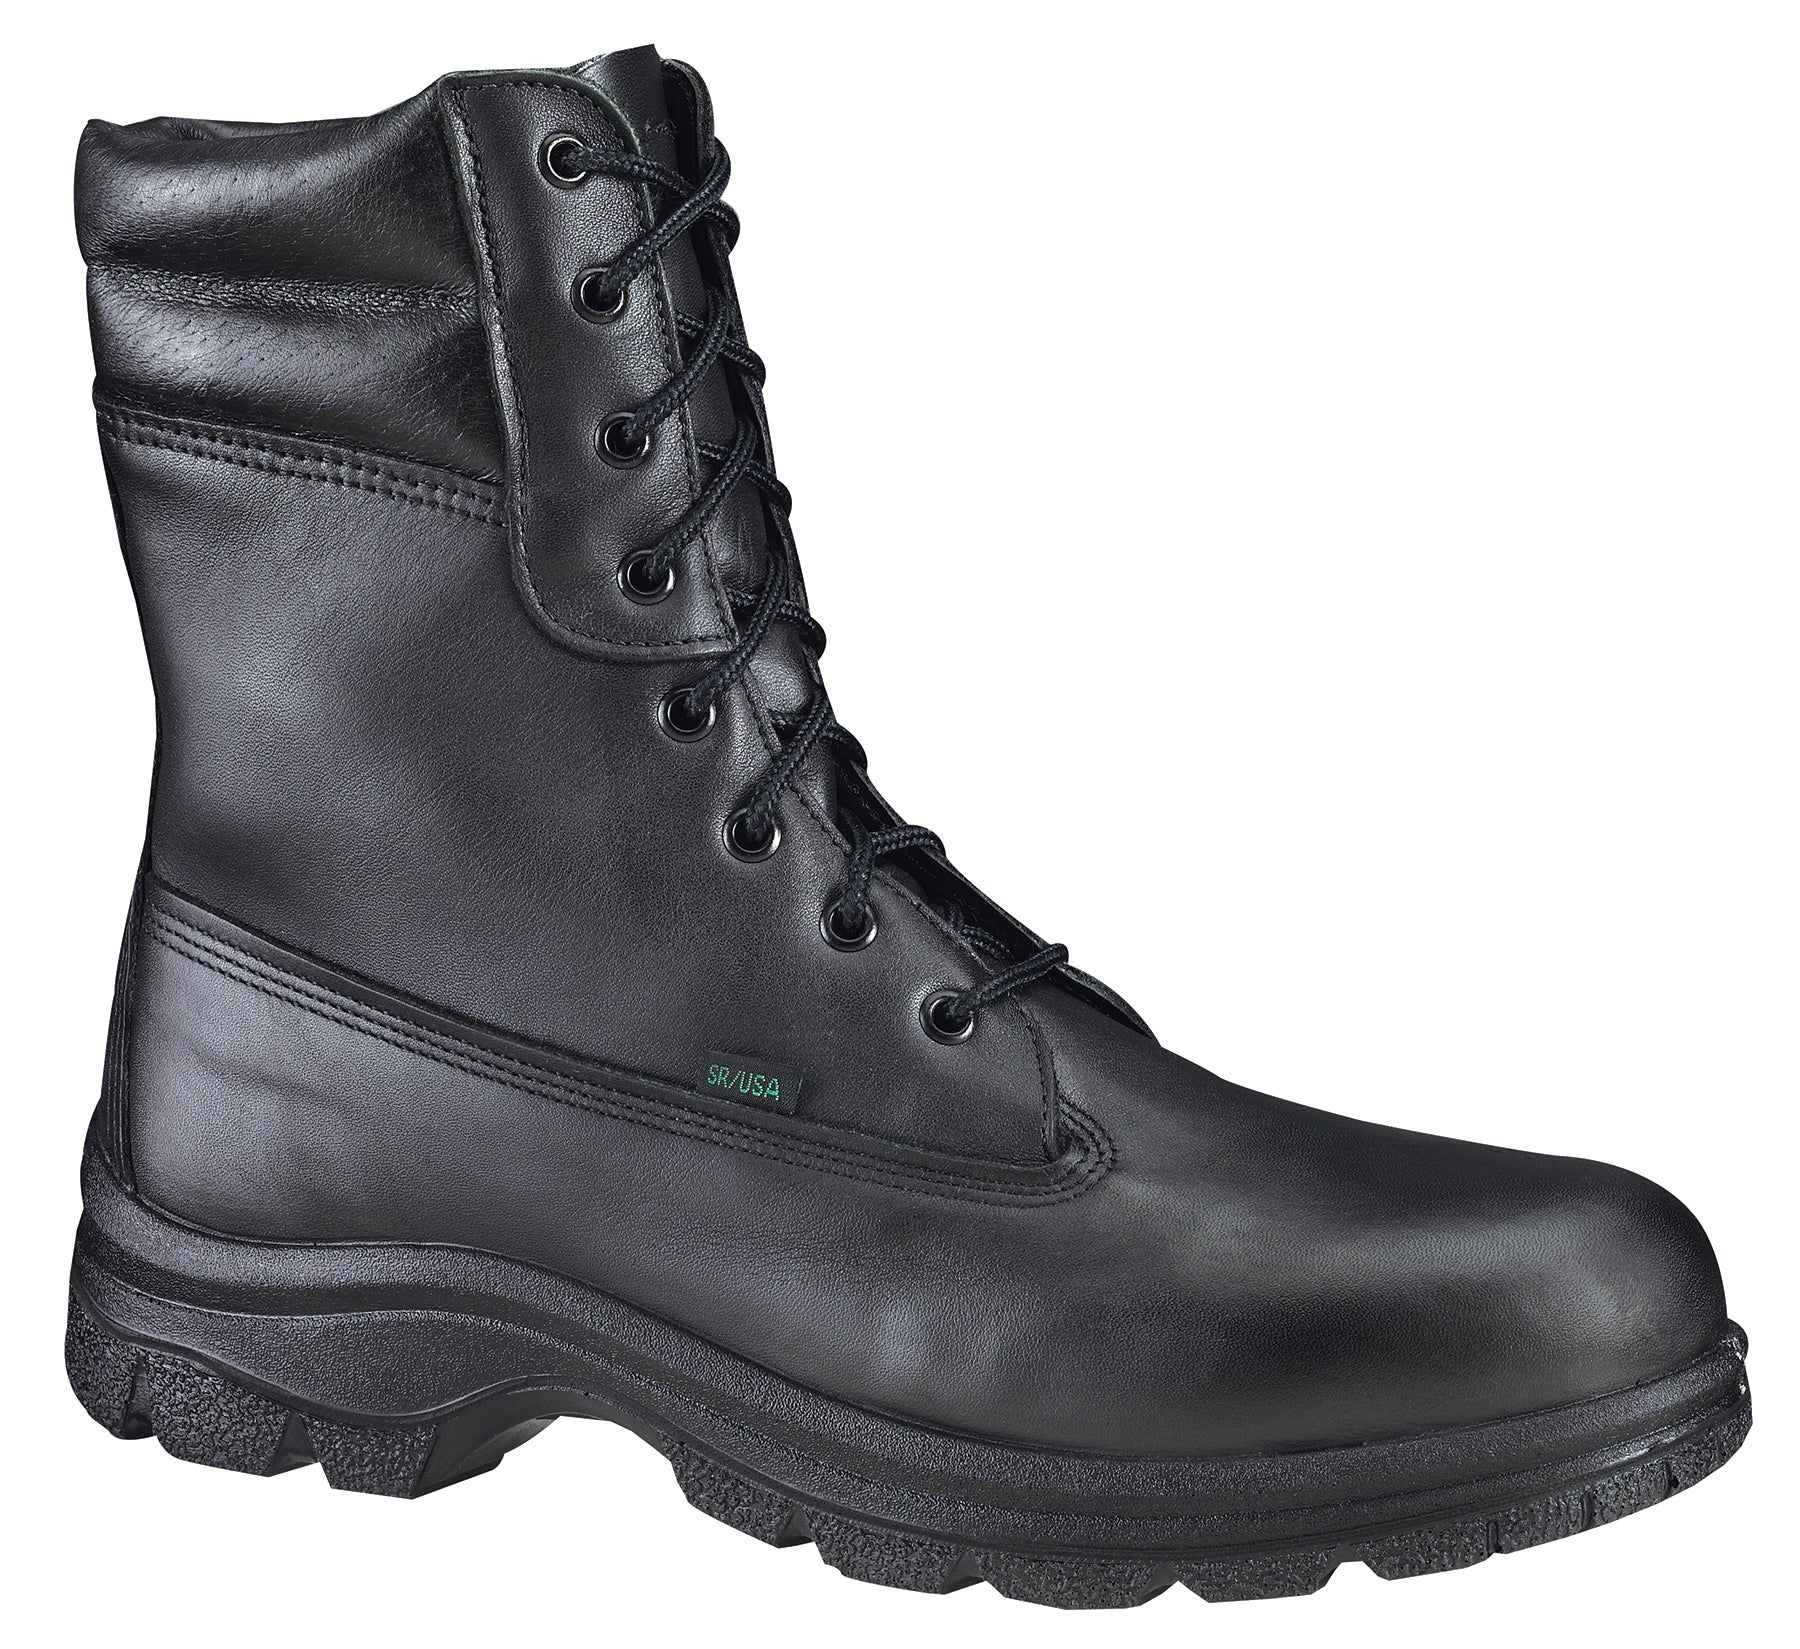 46632c33f1d Thorogood Mens WP Black Leather Weatherbuster Boots 8in Insulated